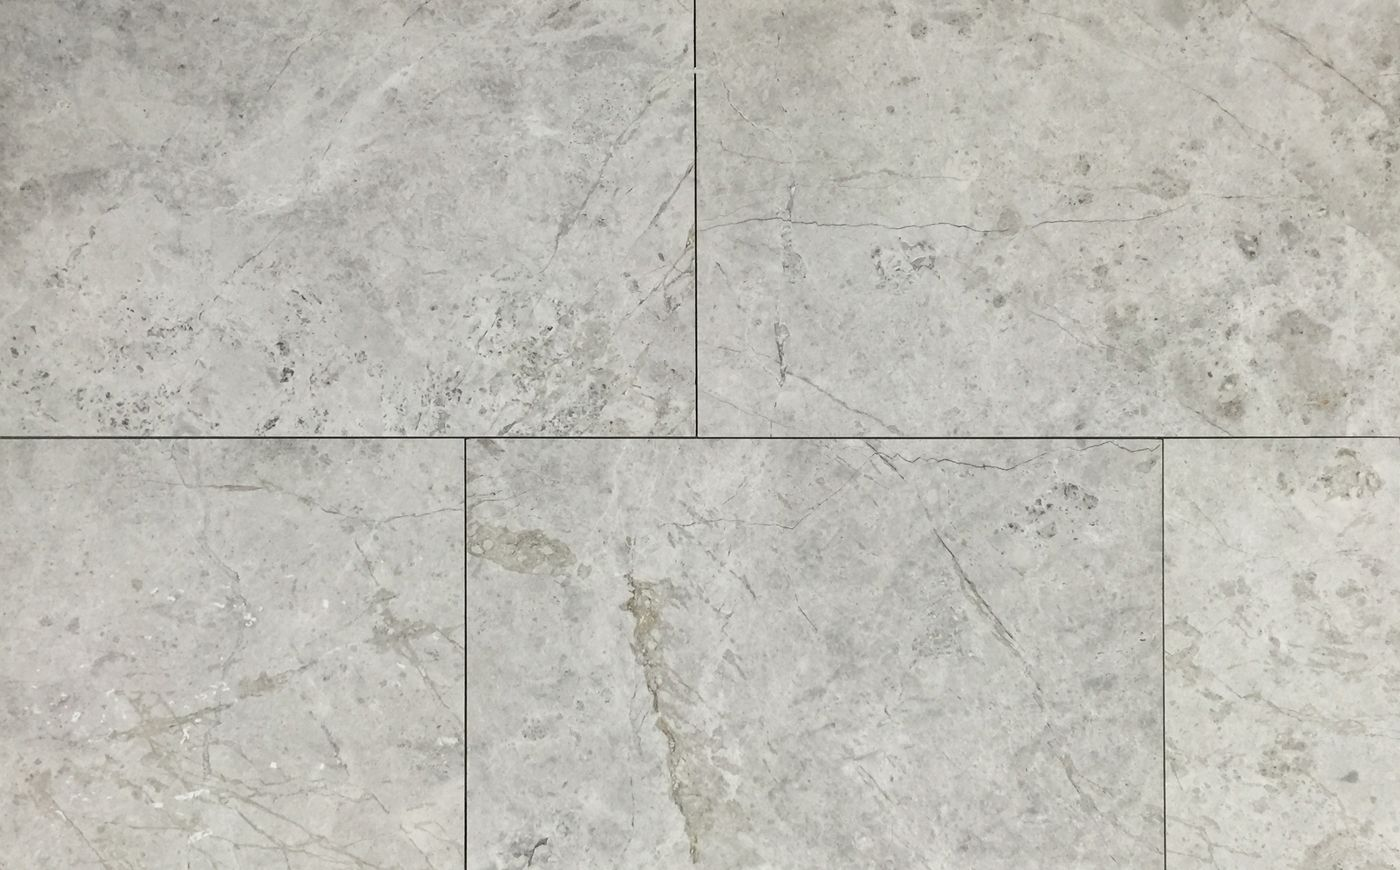 Dogal Light Grey Marble Honed Products Surface Gallery Grey Marble Honed Marble Tiles Light Grey